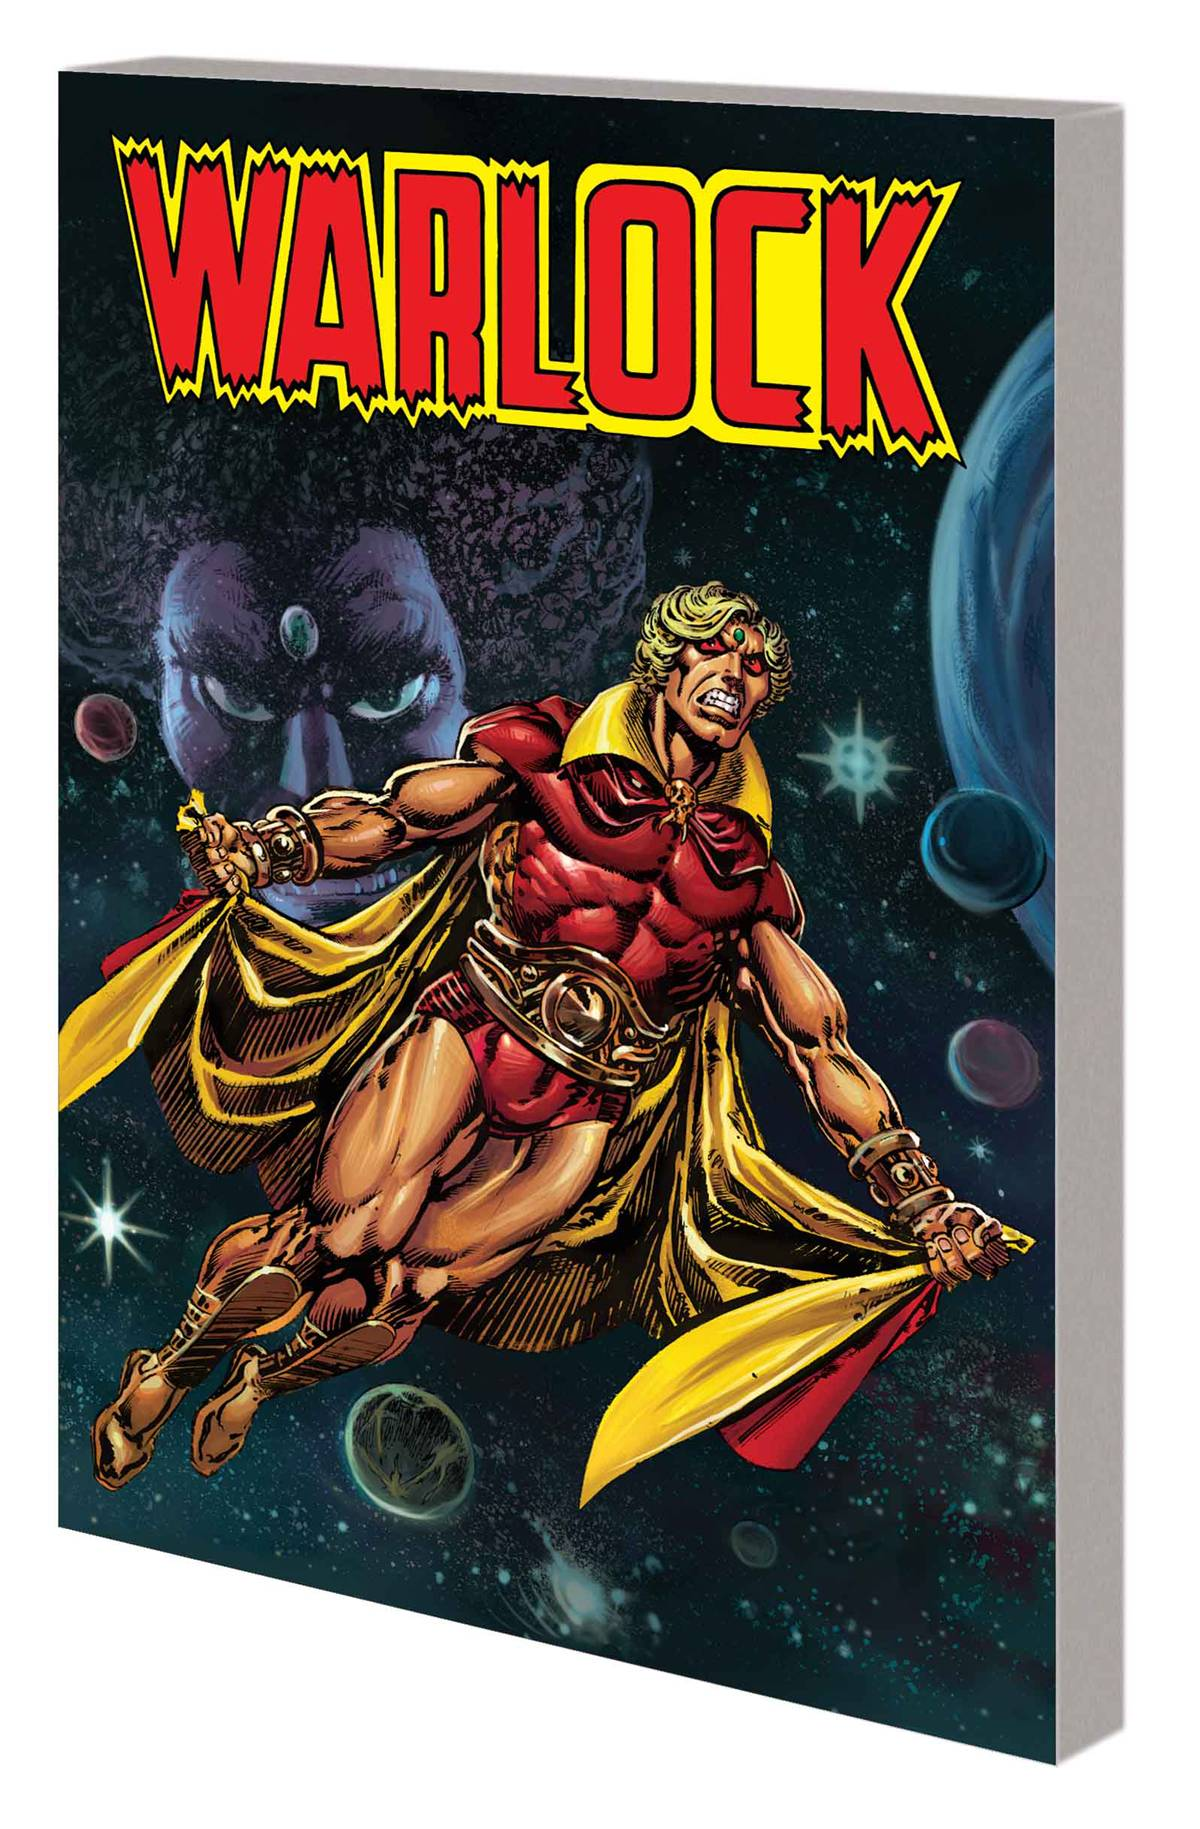 Warlock by Jim Starlin: The Complete Collection - Michael's PickHave you already read The Infinity Gauntlet? Interested in reading some of the classic cosmic story lines that lead up to it? The legendary Jim Starlin began planting seeds for what would eventually become the Infinity/Thanos story lines all the way back in the late '60s in his runs on Iron Man and Captain Marvel (available in The Life and Death of Captain Marvelcollection). In the '90s, prior to The Infinity Gauntlet miniseries, he returned Thanos to prominence in his run on The Silver Surfer (collected in part in Silver Surfer: Rebirth of Thanos). However, my favorite of Starlin's cosmic stories has to be his Adam Warlock run, collected in Warlock by Jim Starlin: The Complete Collection. Angsty, introspective, psychedelic, and action packed, Warlockis the '70s equivalent of a Grant Morrison superhero comic. Featuring plenty of Thanos, it also has the first appearances of Pip the Troll and Gamora. The now classic two-parter that completes the volume has the Avengers, Captain Marvel, Spidey, and the Thing. Ambitious in its heady scope and absolutely beautiful to look at, Warlock by Jim Starlin: The Complete Collection delivers a sizable and satisfying slice of pre-Infinity Gauntley sci-fi. Marvel has been mining Starlin's stories for the movies and yet Starlin remains under appreciated by today's comic fans. Let's rectify that. Check out Warlock, you won't be disappointed.